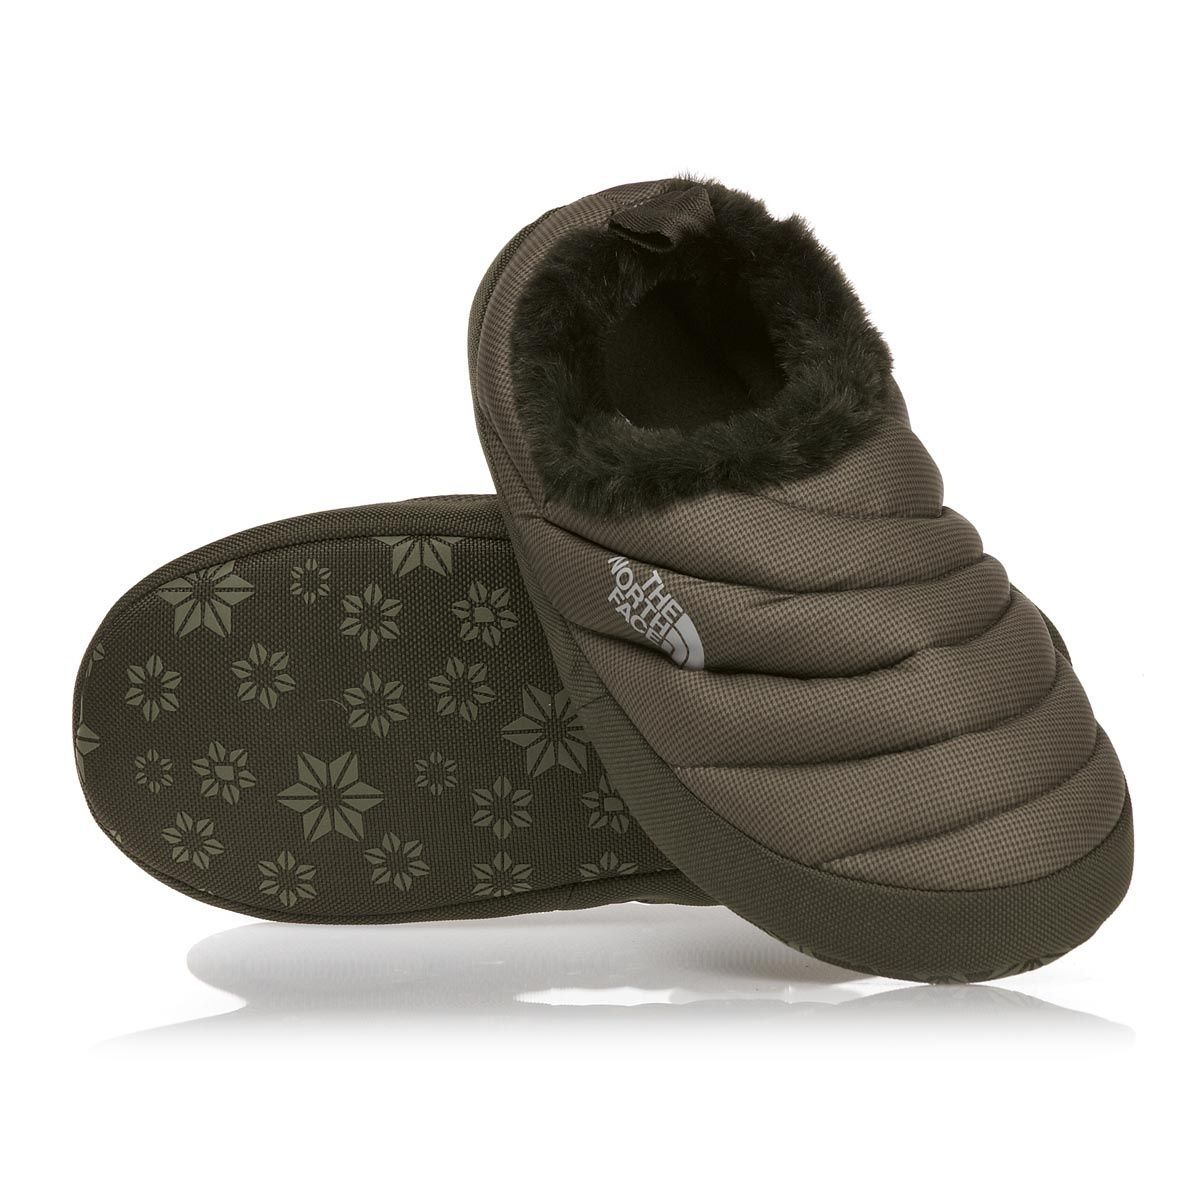 83a87c7d2 The North Face Women's NSE Tent Mule Fur II Slippers - Brown ...